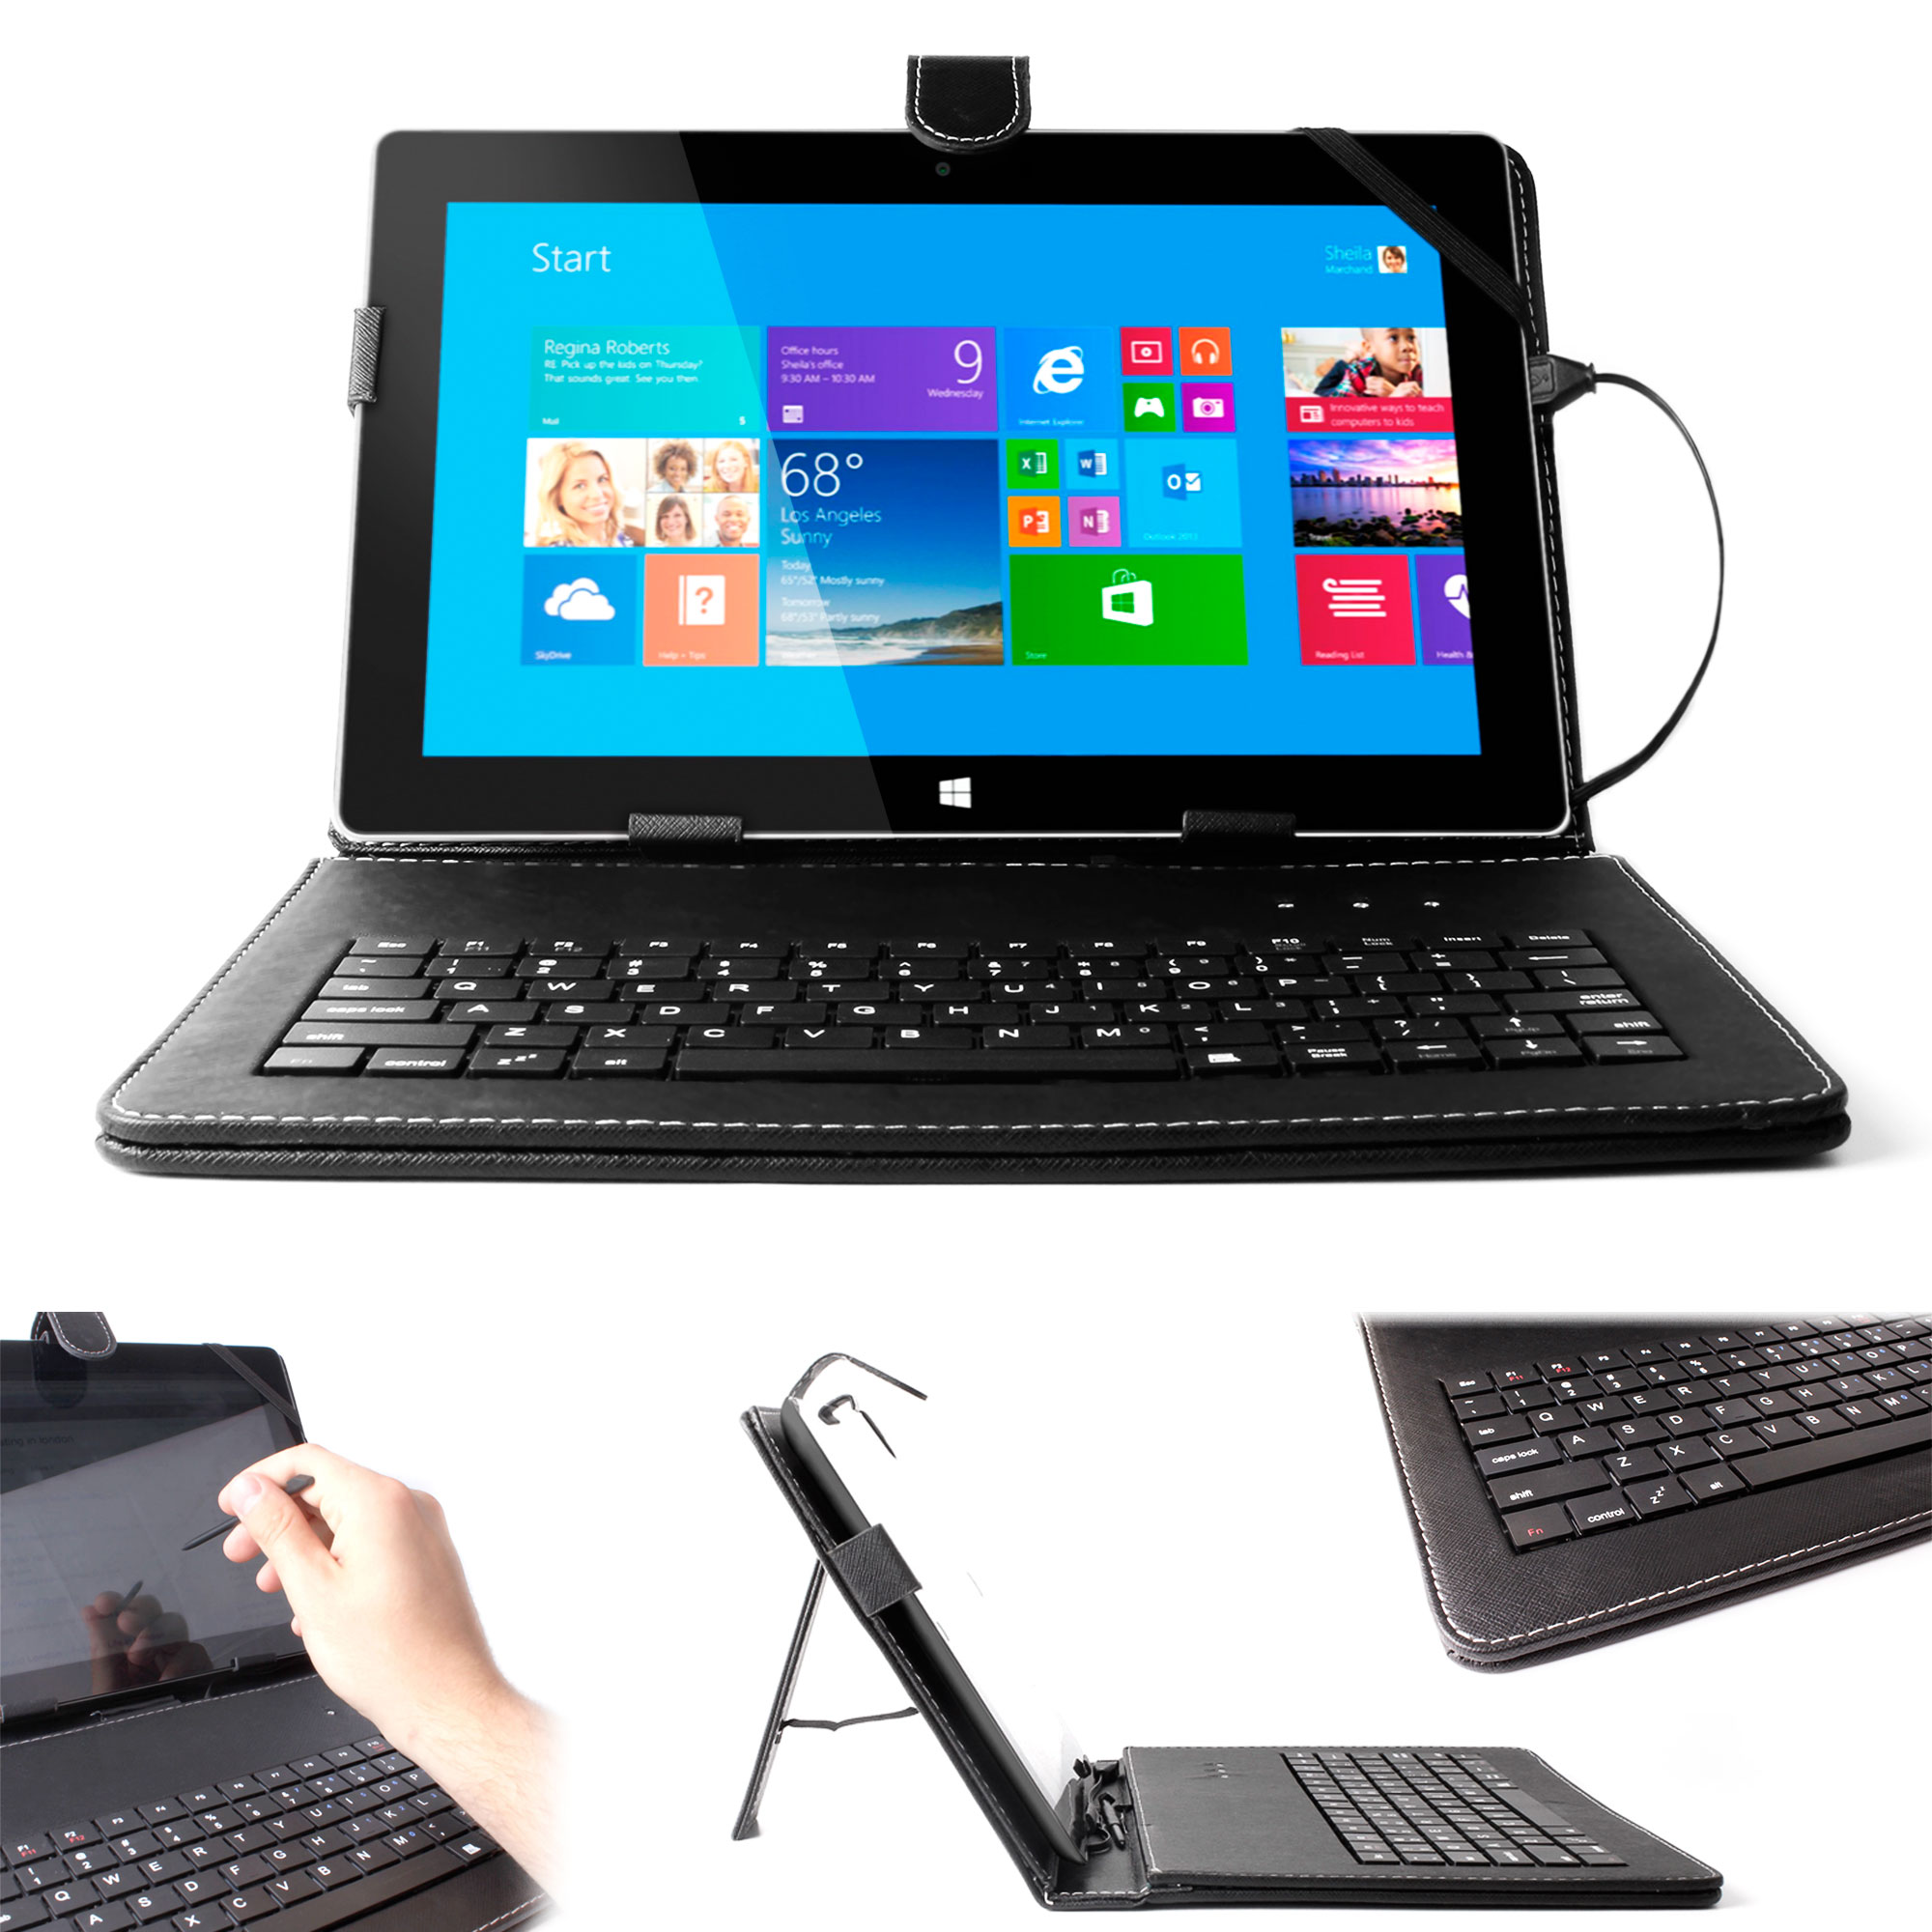 Premium Quality QWERTY Keyboard Case for Microsoft Surface RT & RT 2 in Black | eBay